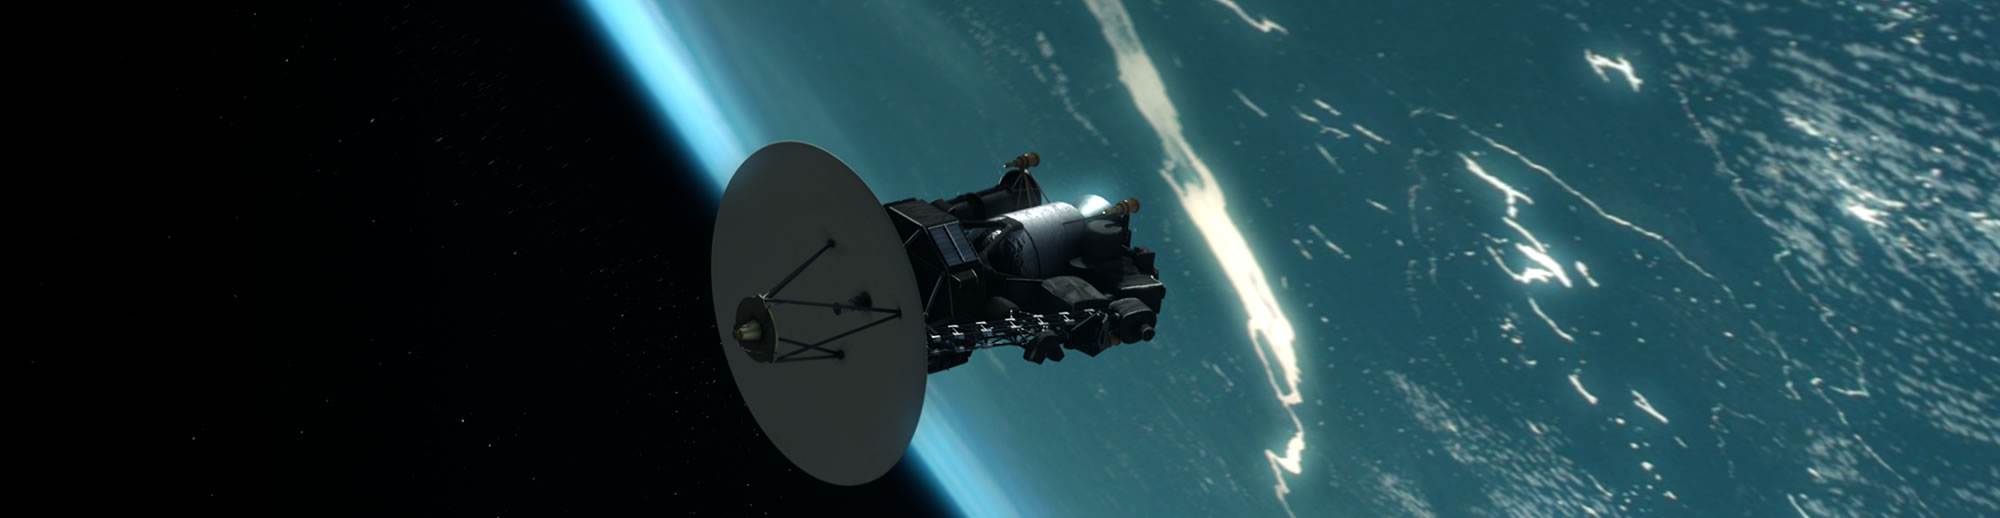 Voyager with blue planet in background